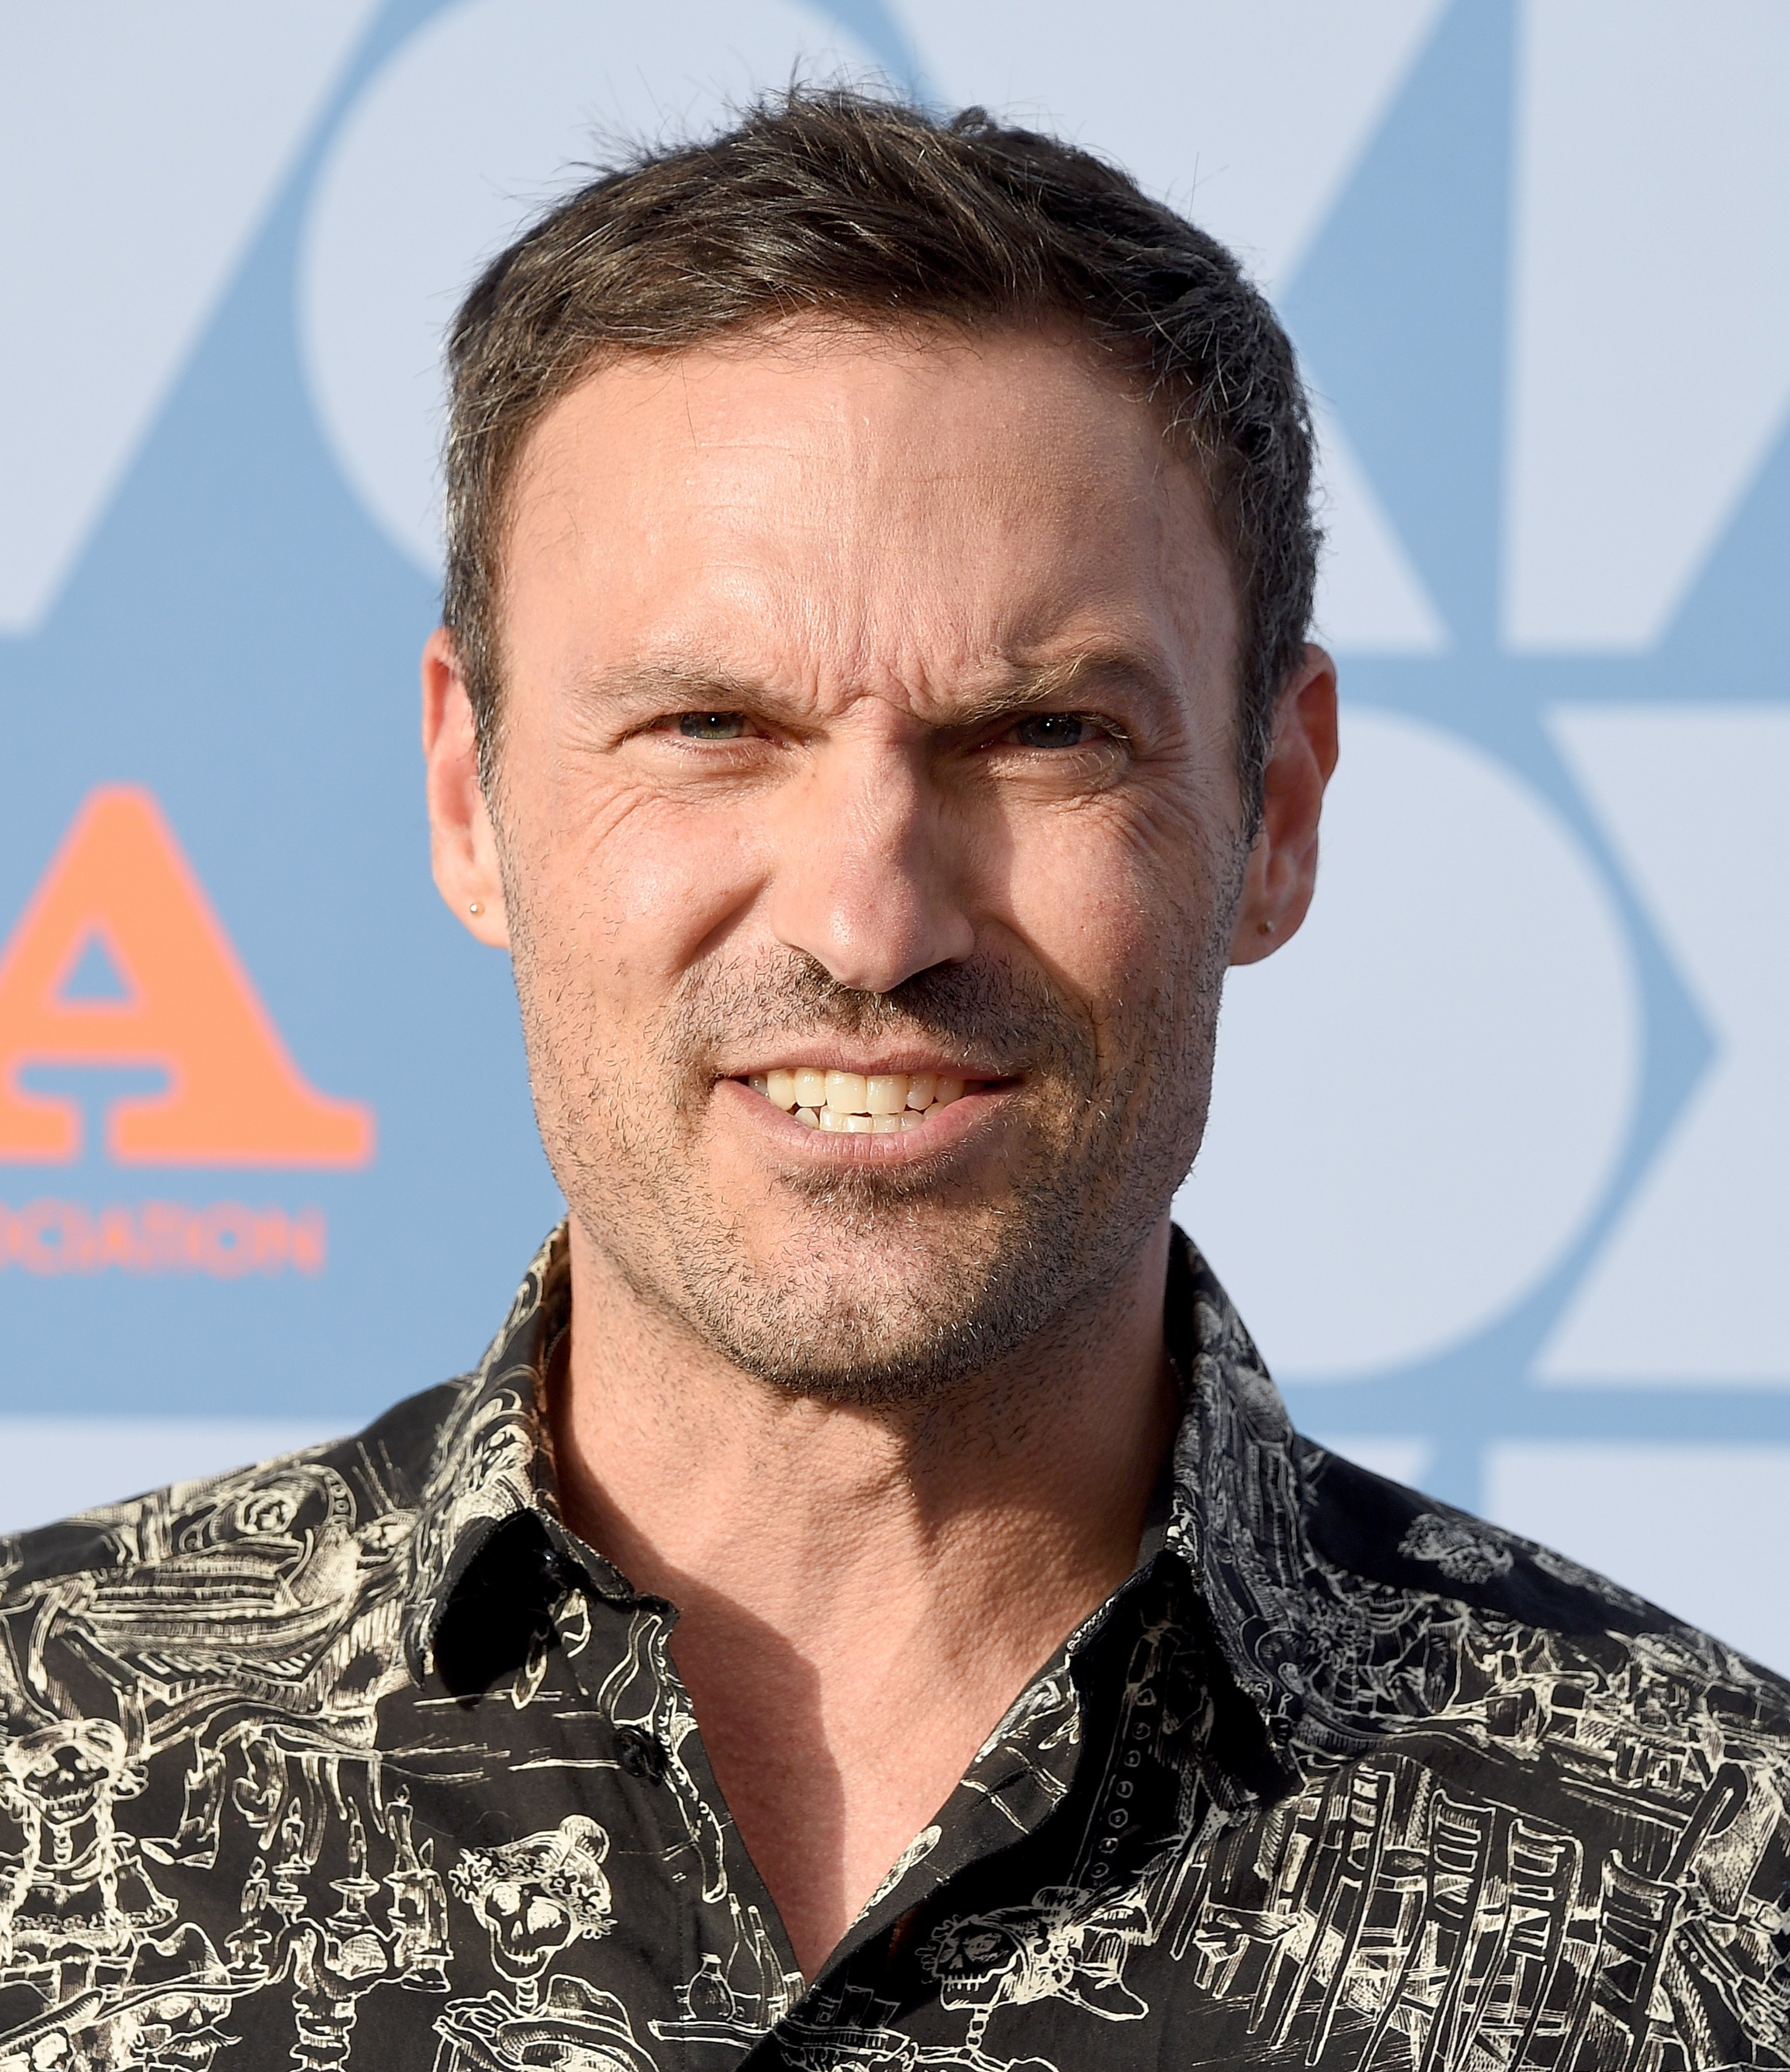 Brian Austin Green arrives at the FOX Summer TCA 2019 All-Star Party / Photo:Getty Images